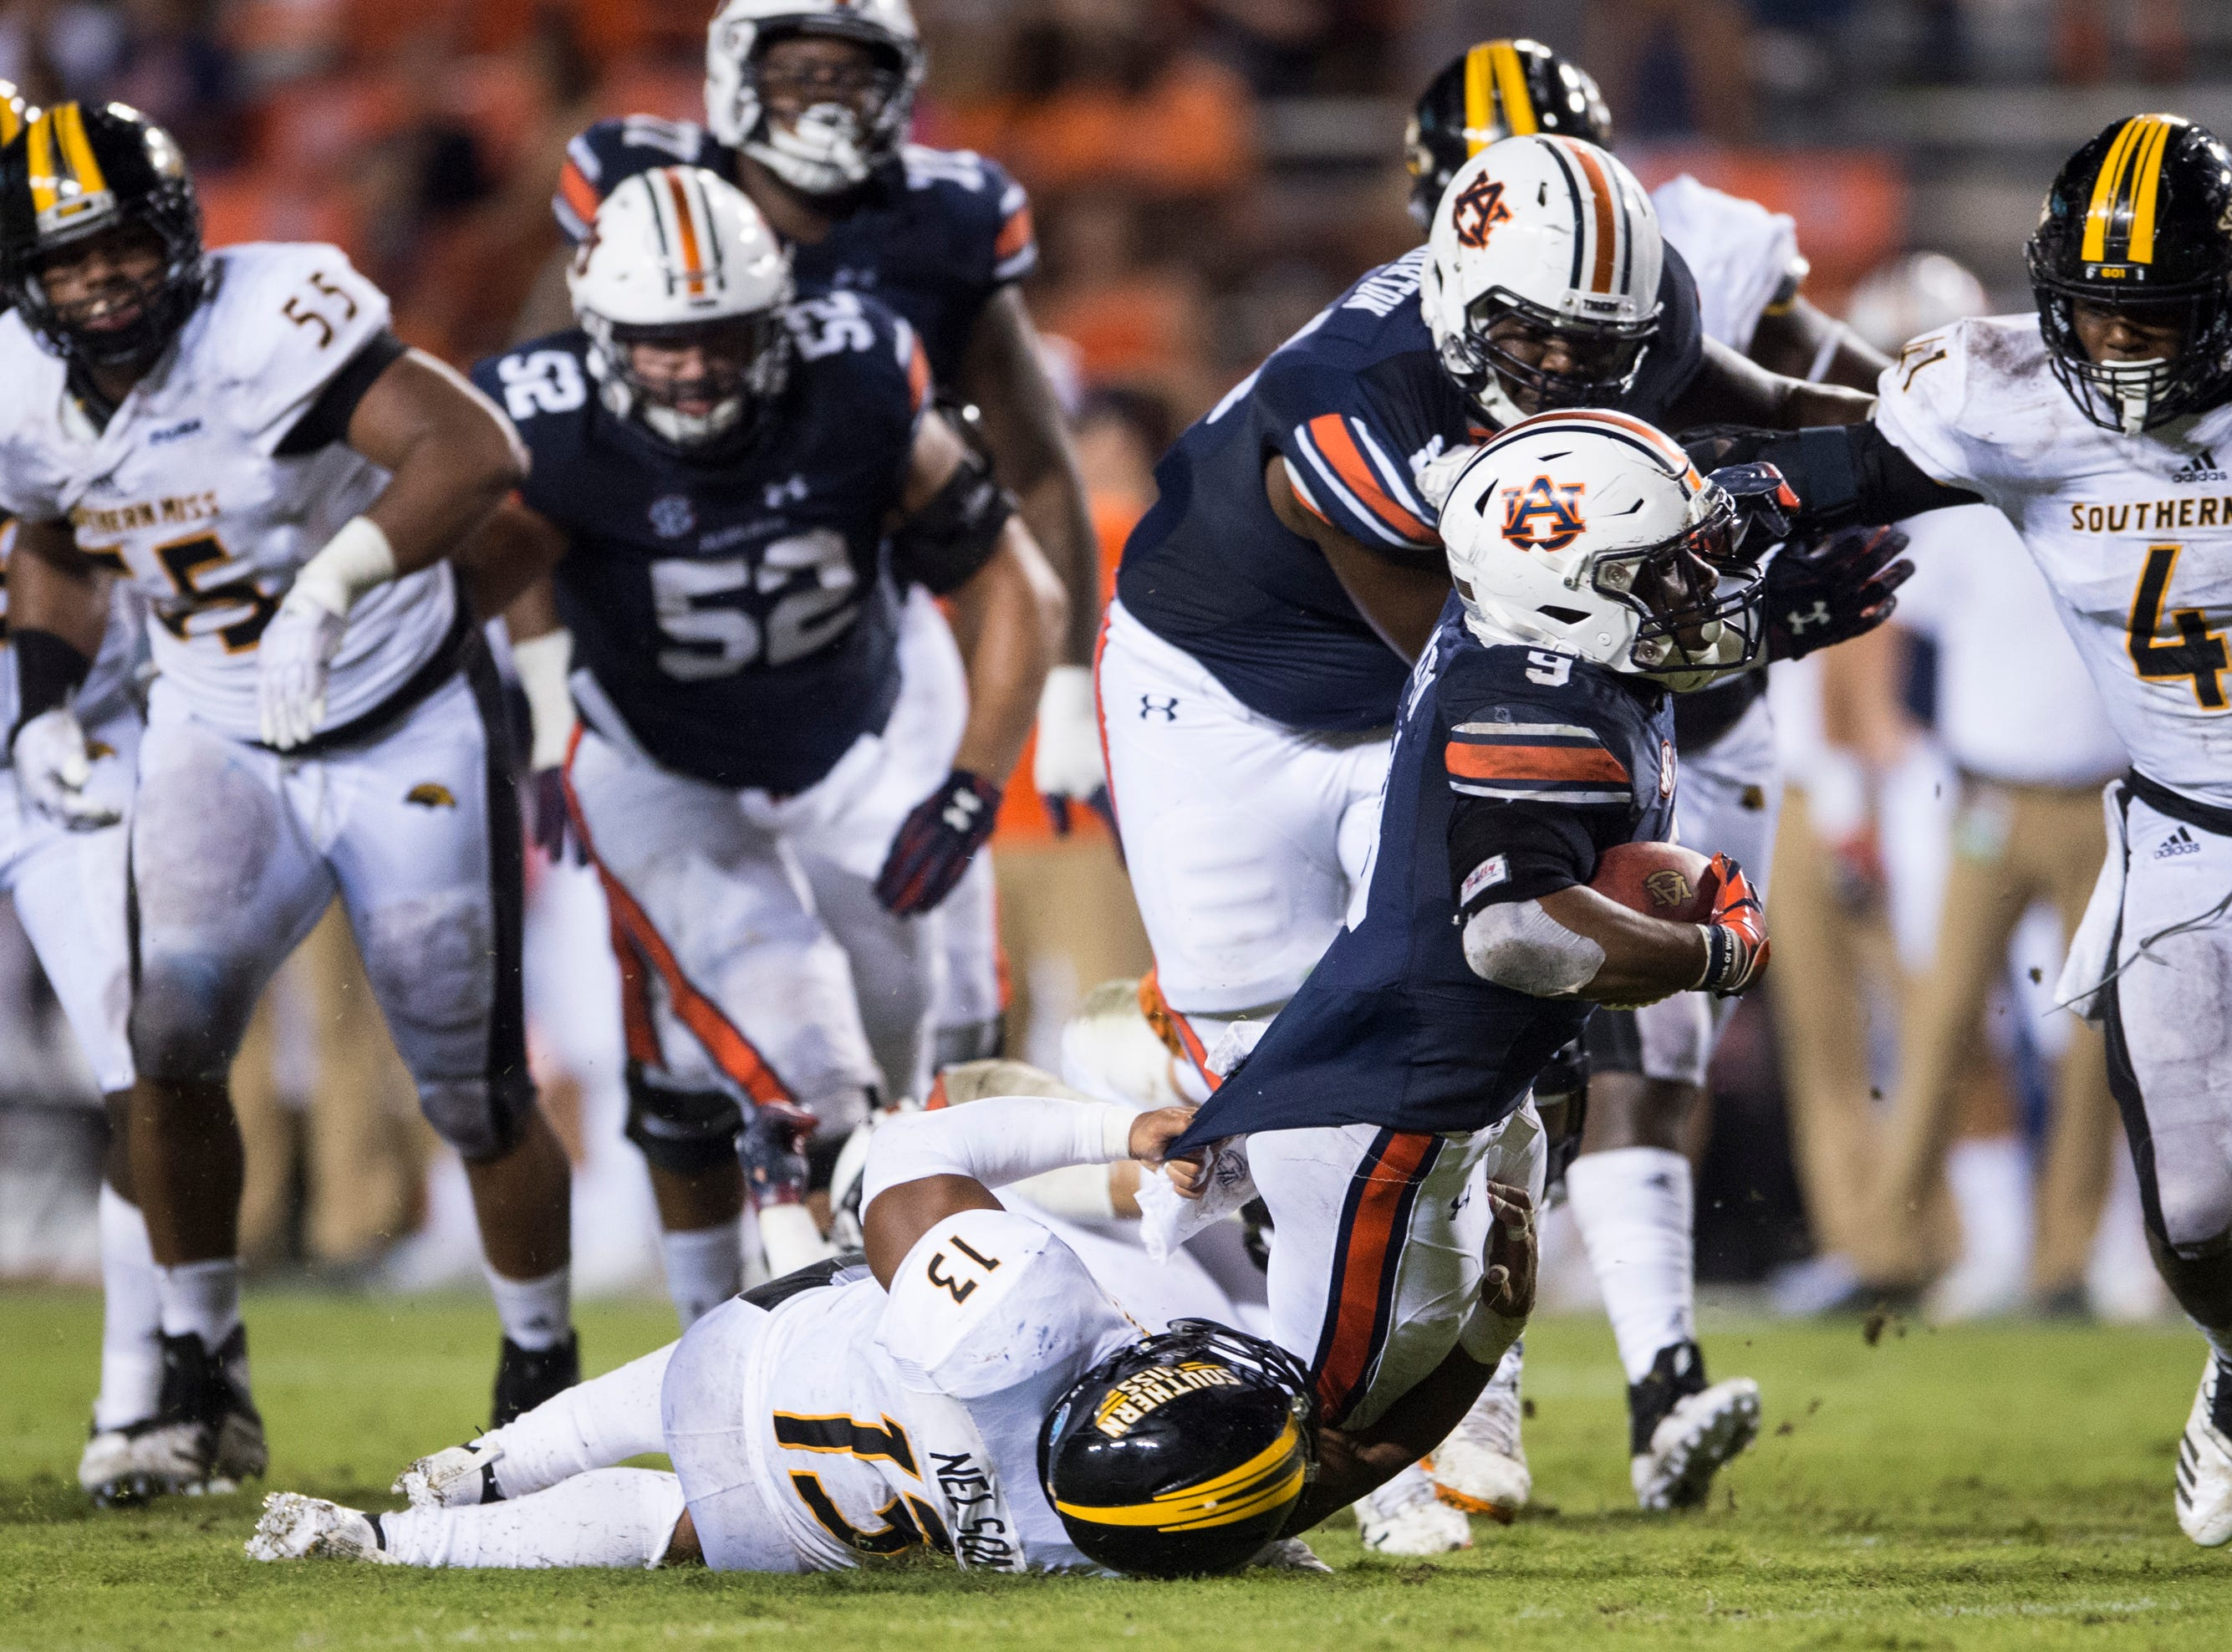 Auburn's Kam Martin (9) is dragged down by Southern Miss' Picasso Nelson Jr. (13) at Jordan-Hare Stadium in Auburn, Ala., on Saturday, Sept. 29, 2018. Auburn defeated  Southern Miss 24-13.